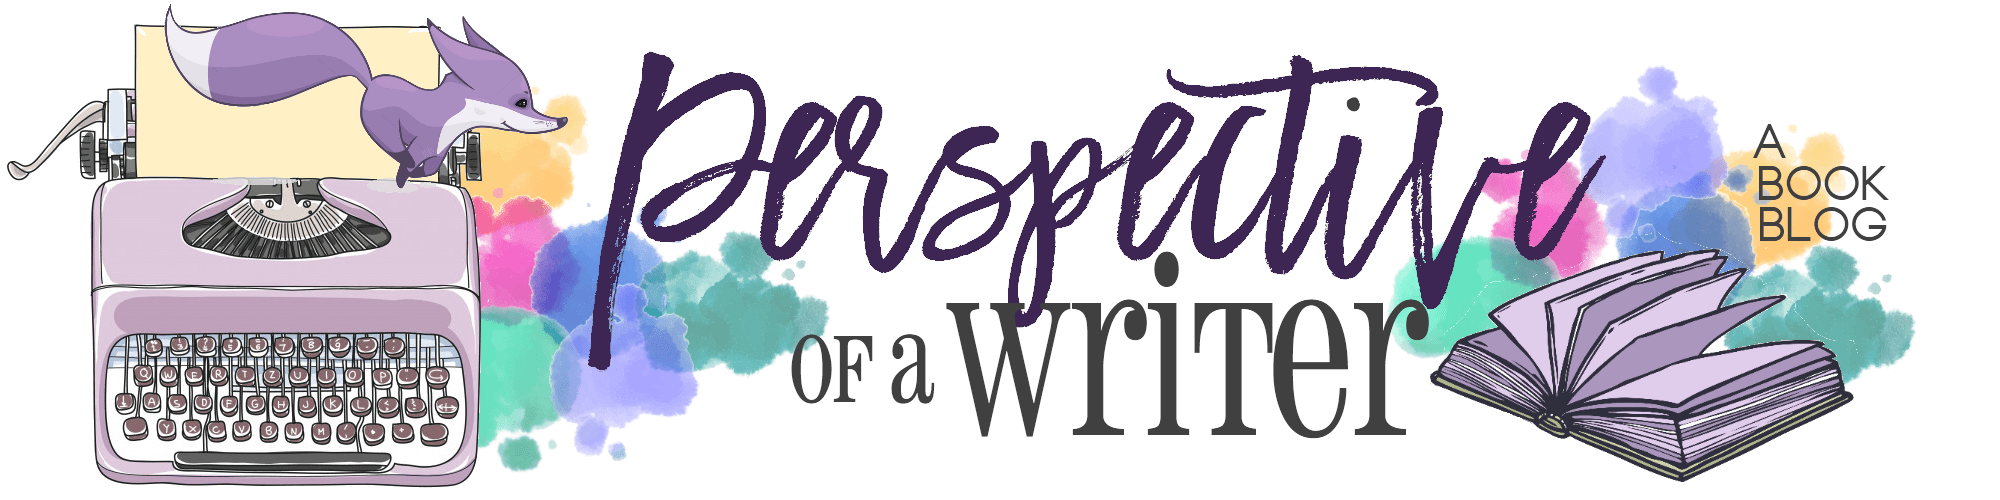 cropped-New-Perspective-of-a-Writer-Logo-2.png